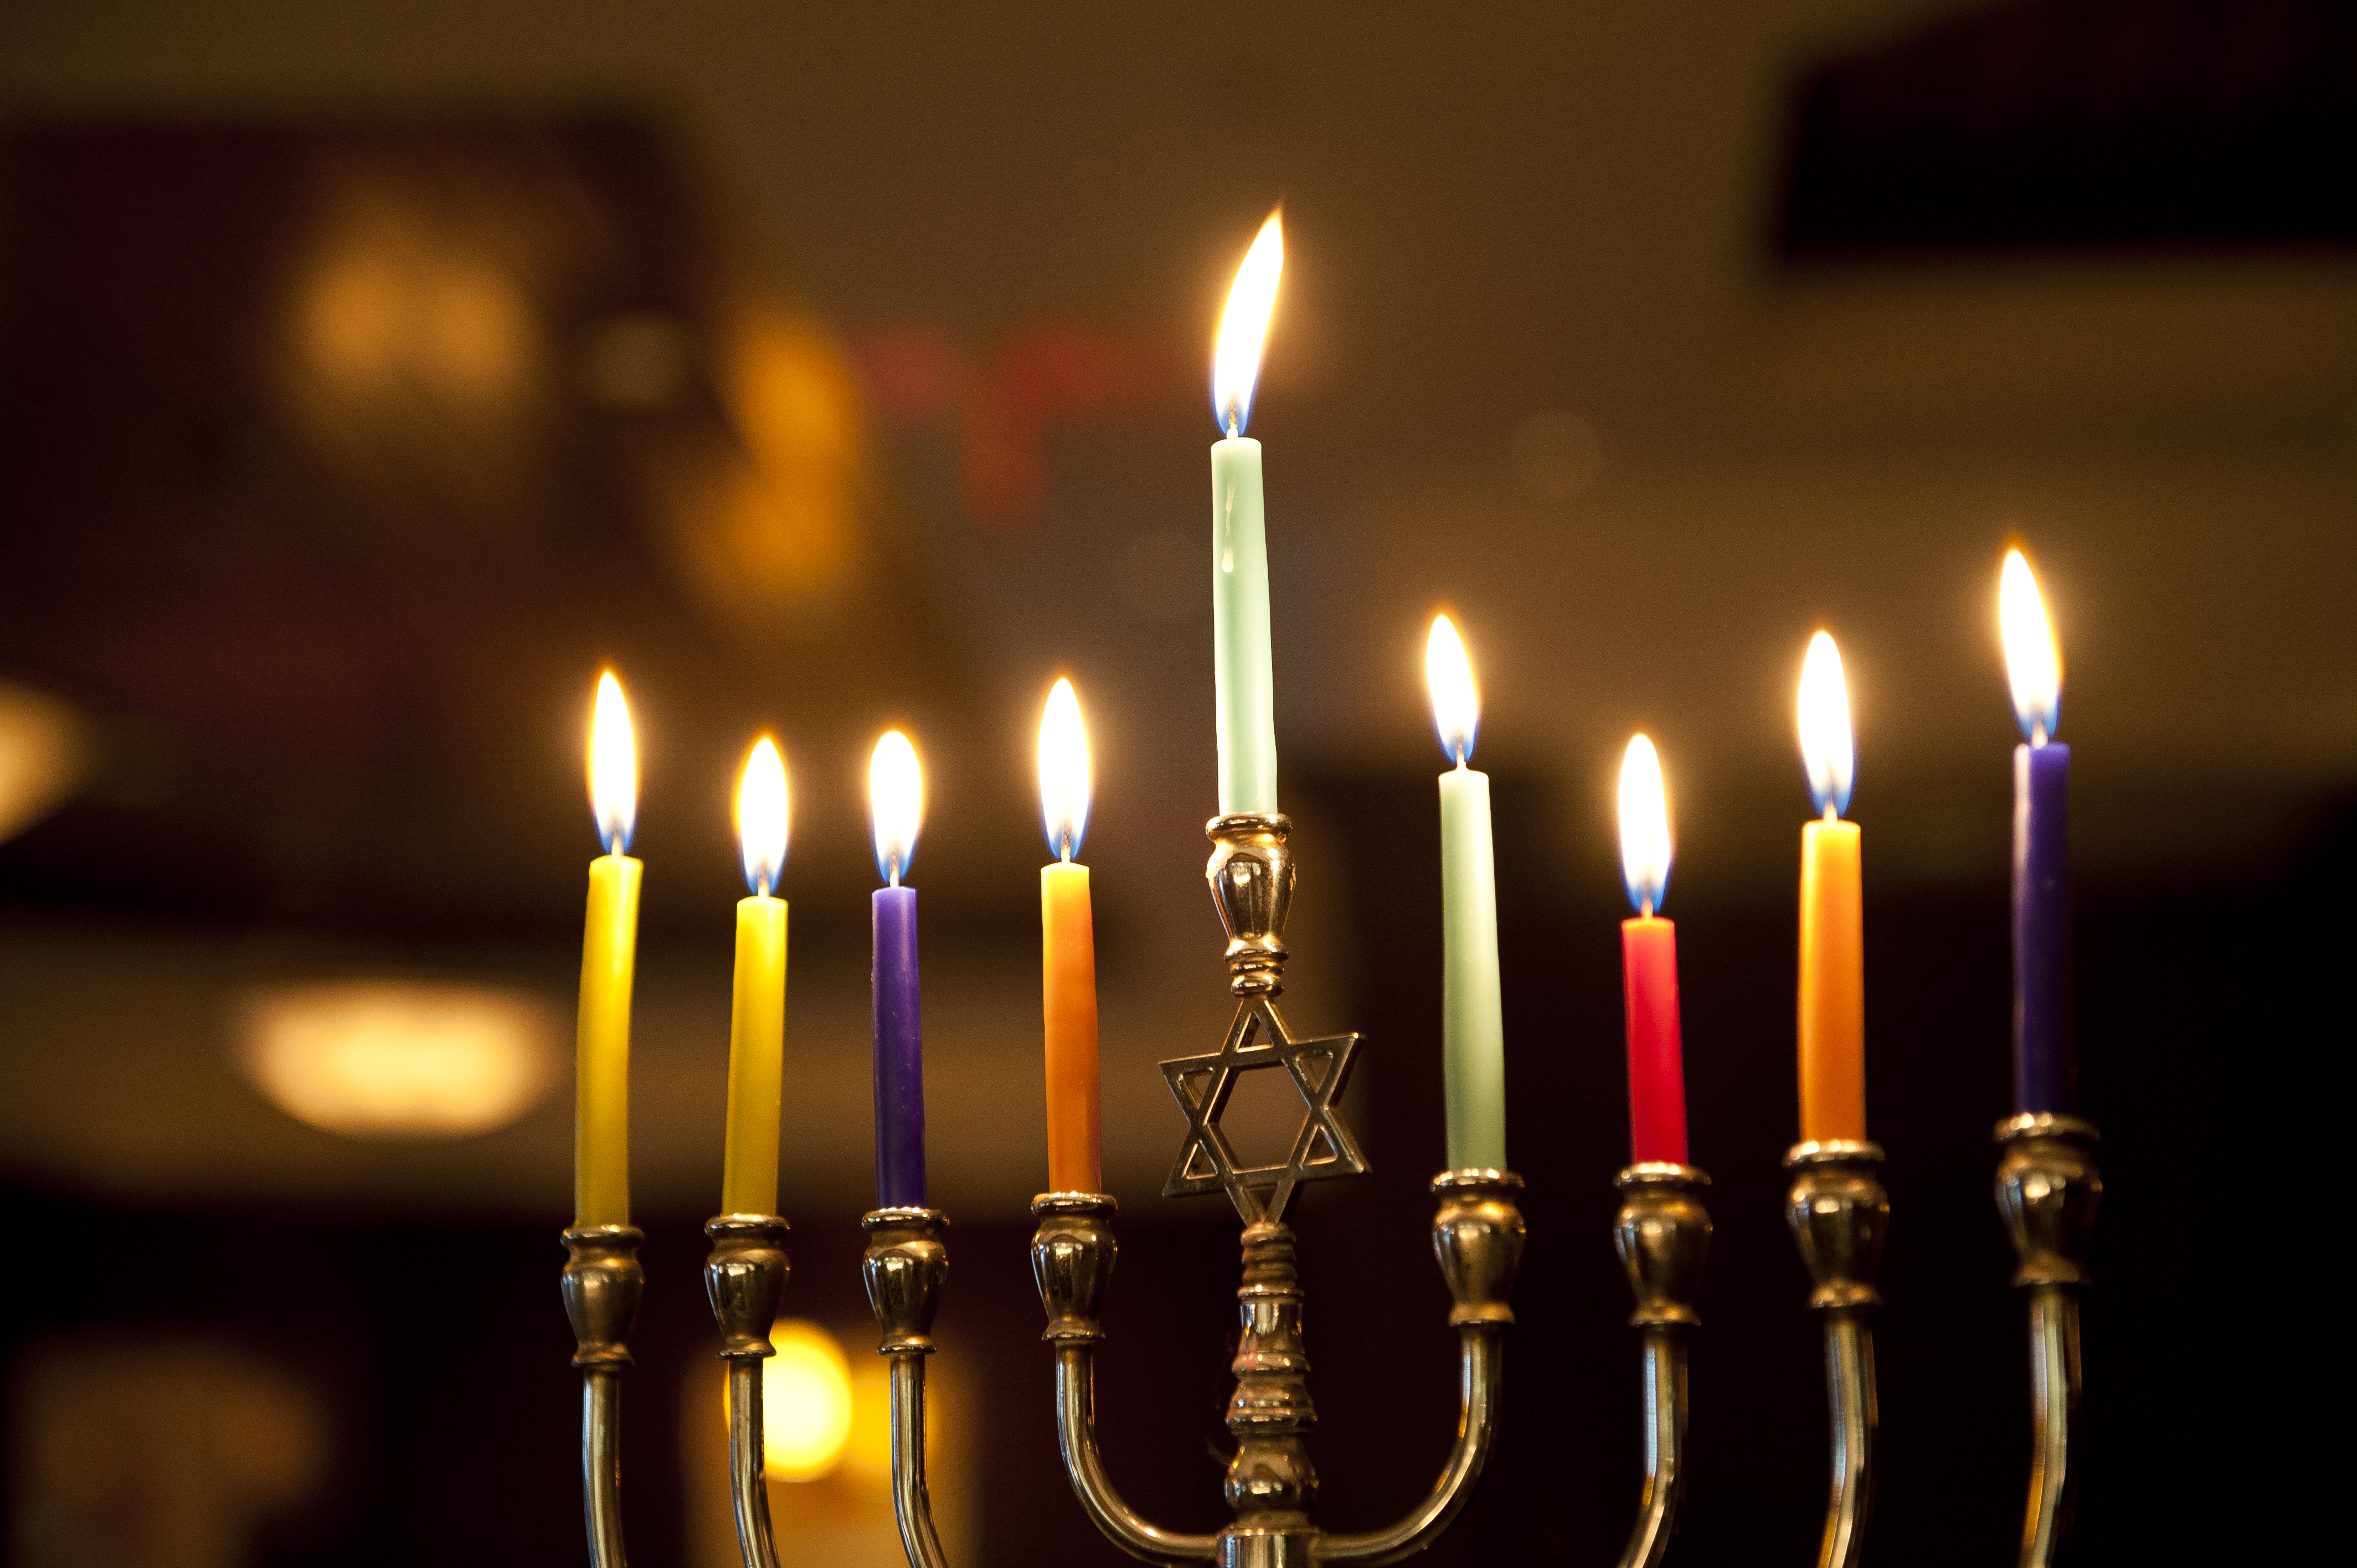 Images of Hanukkah | 4256x2832